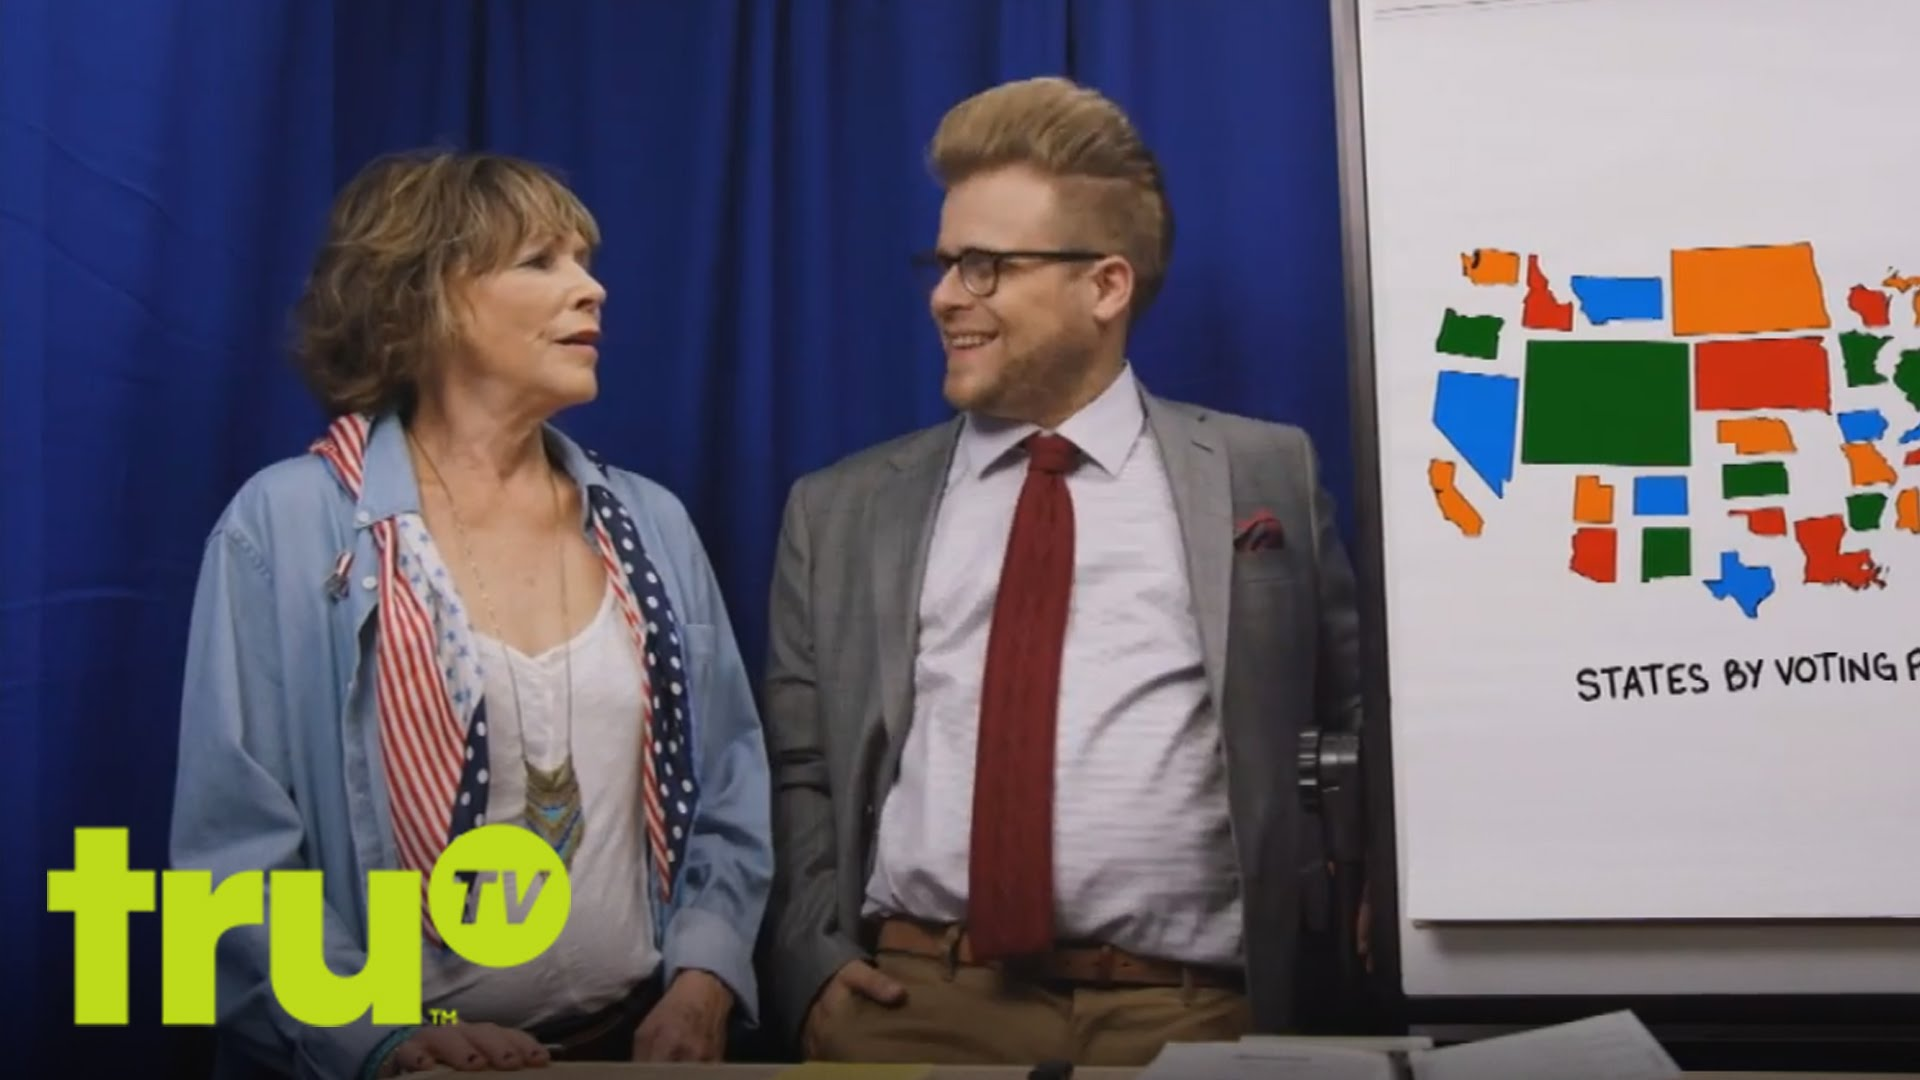 Why the Electoral College Ruins Democracy Adam Ruins Everything 1920x1080